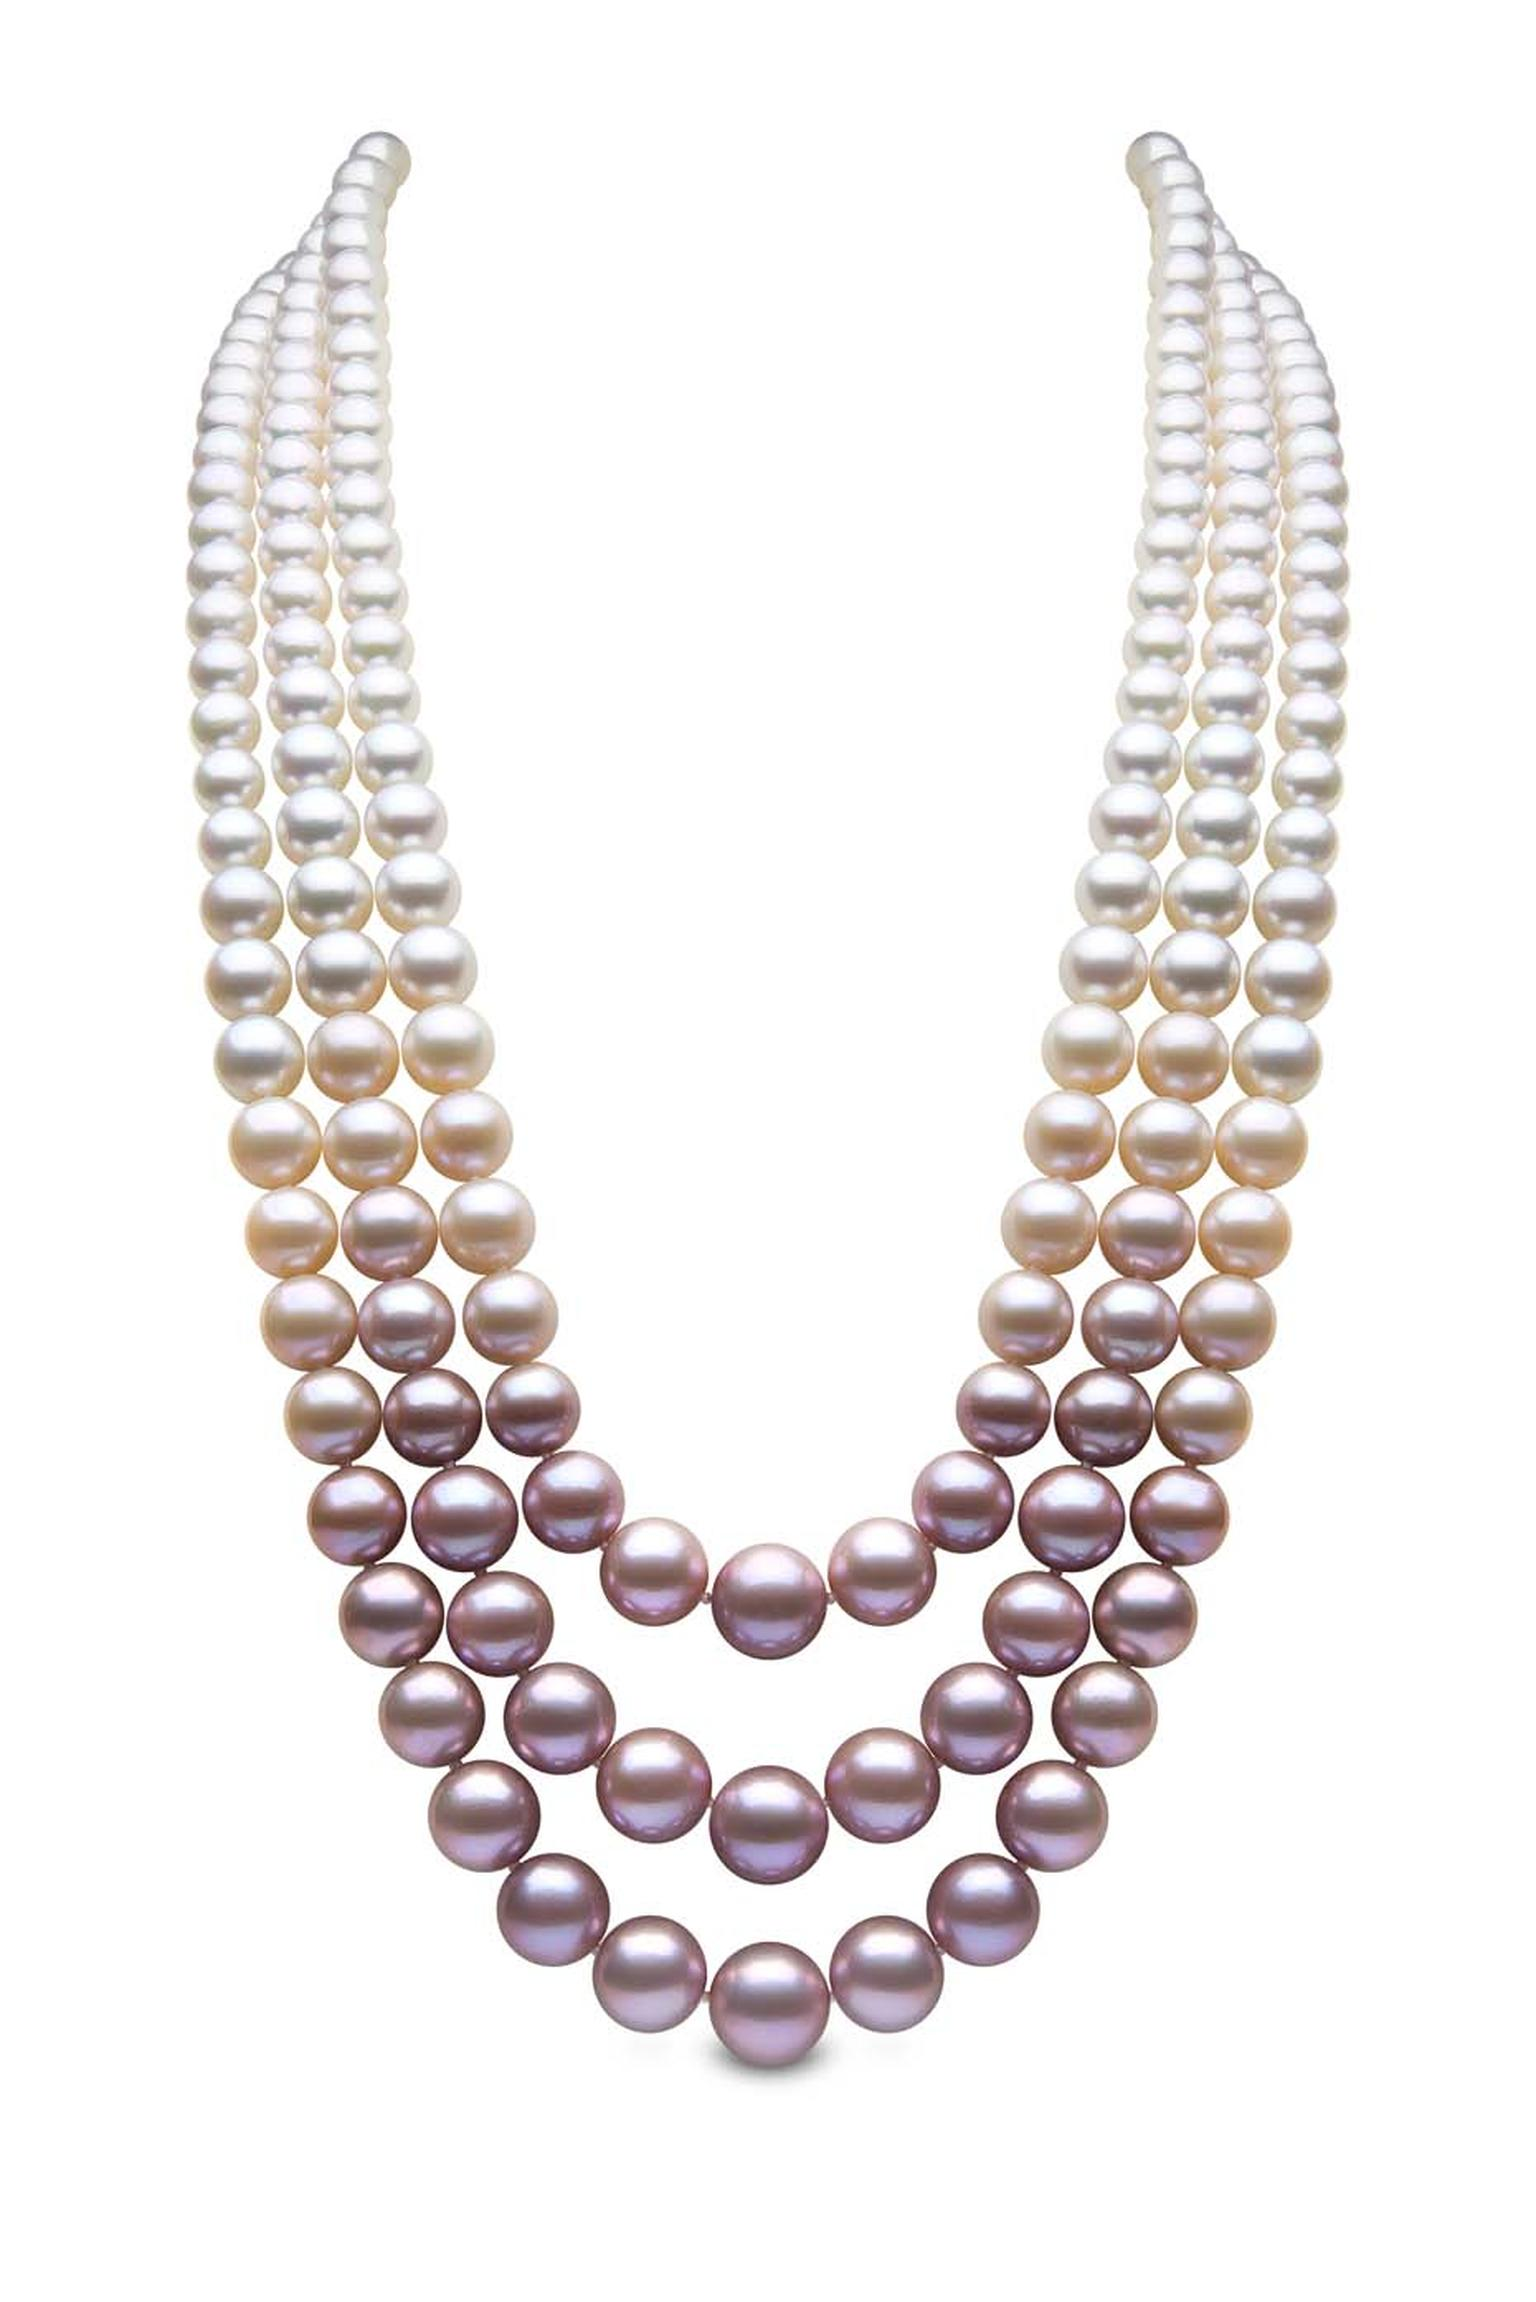 pearl rwco en multistrand necklace rw co